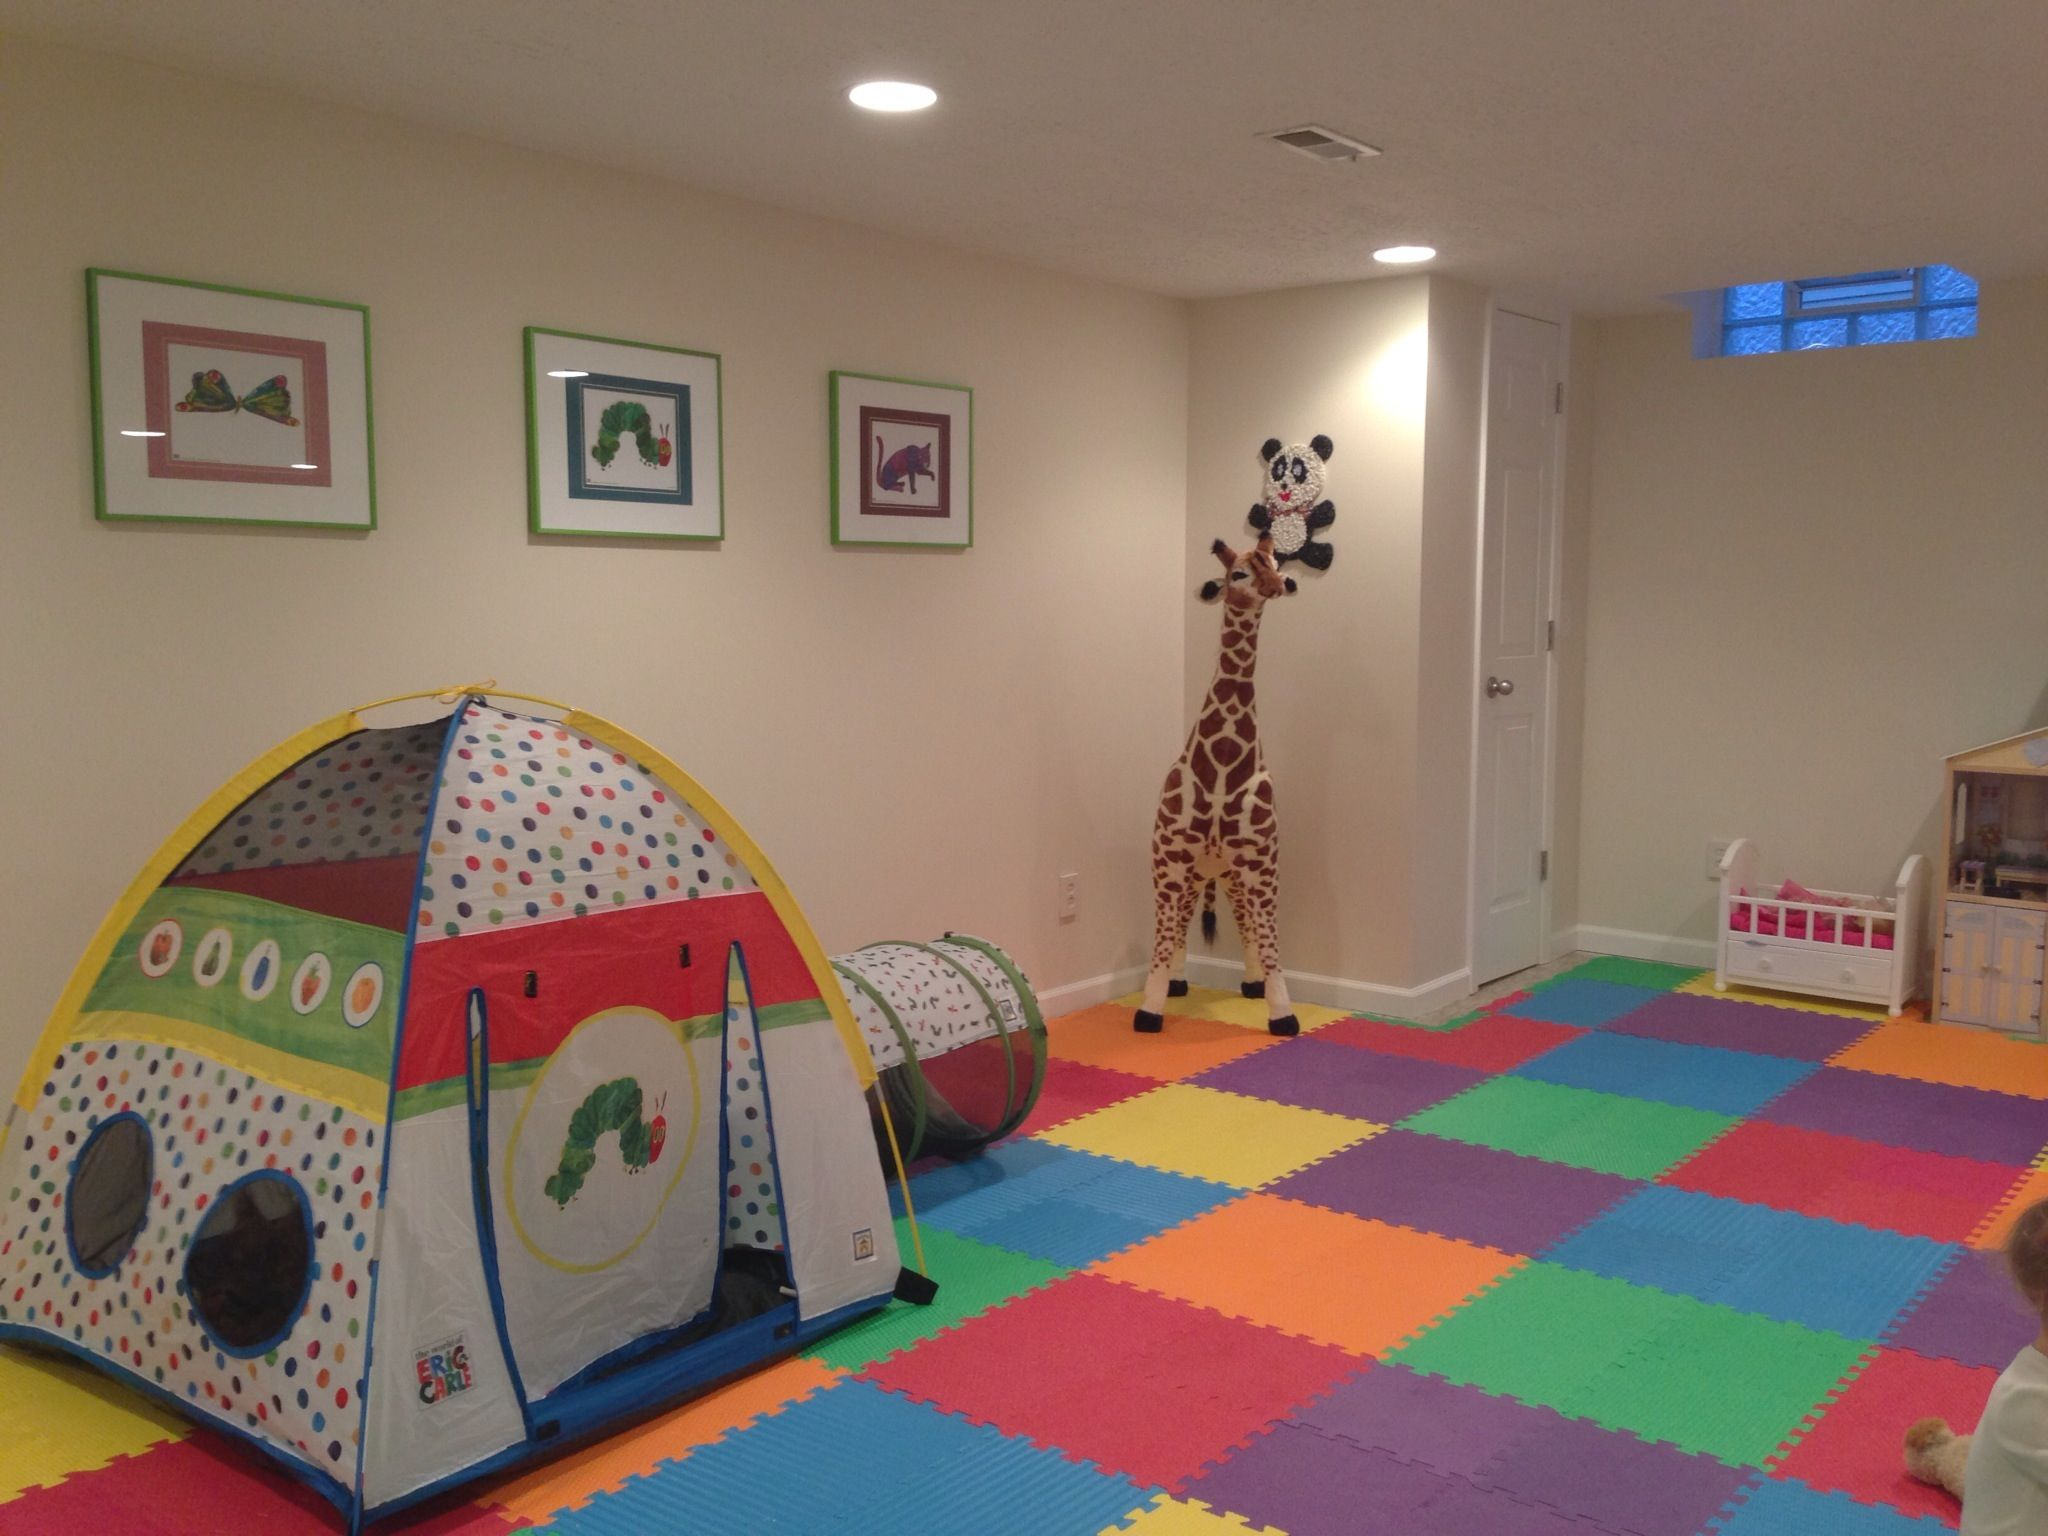 Finished Basement Playroom Project Matted Prints From The Eric Carle